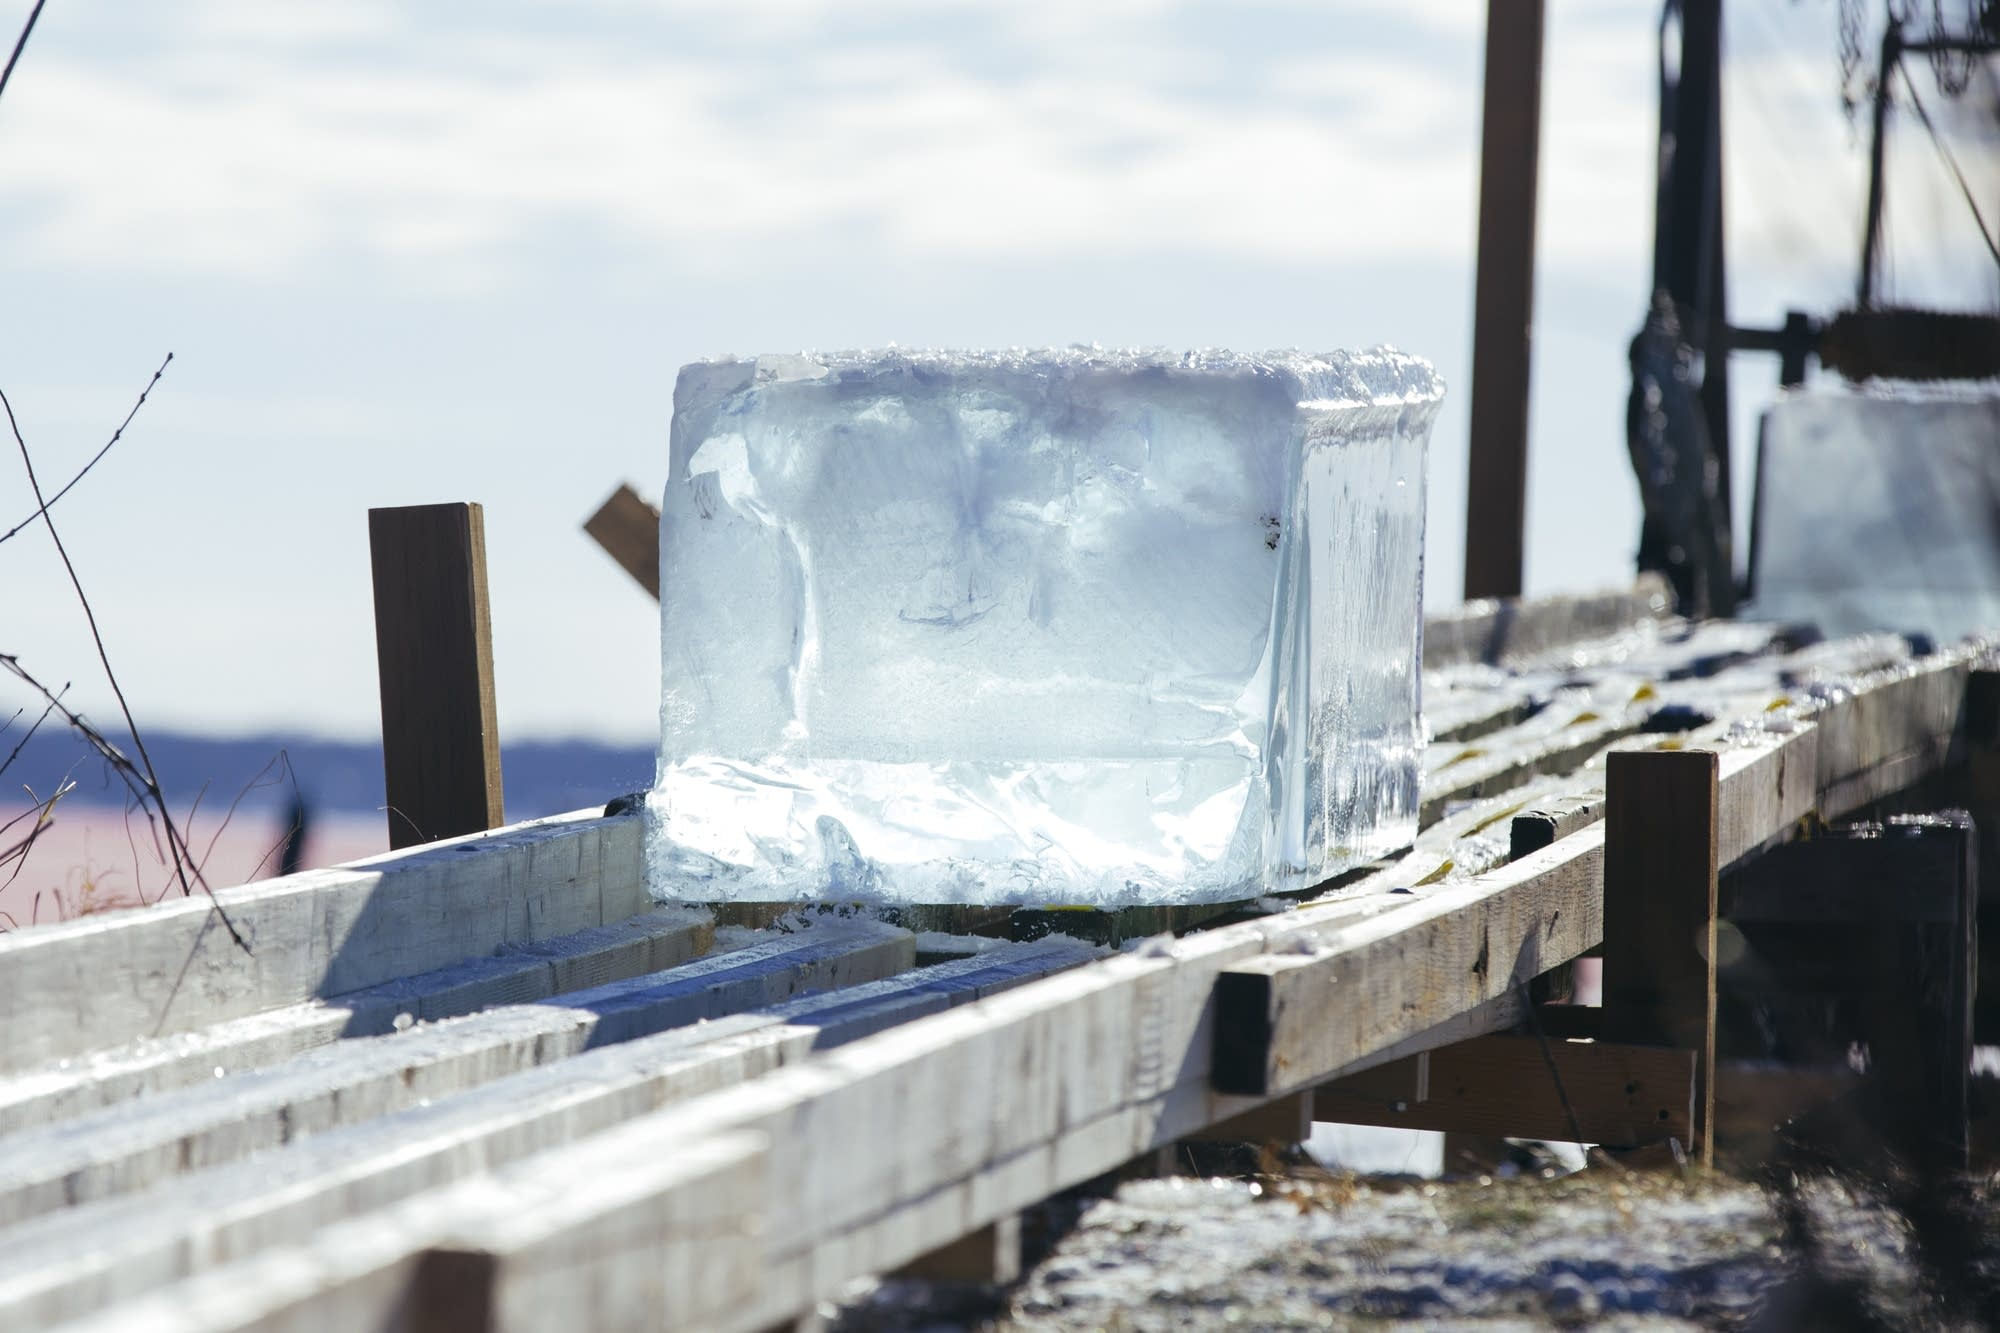 An ice block slides down a wooden ramp.